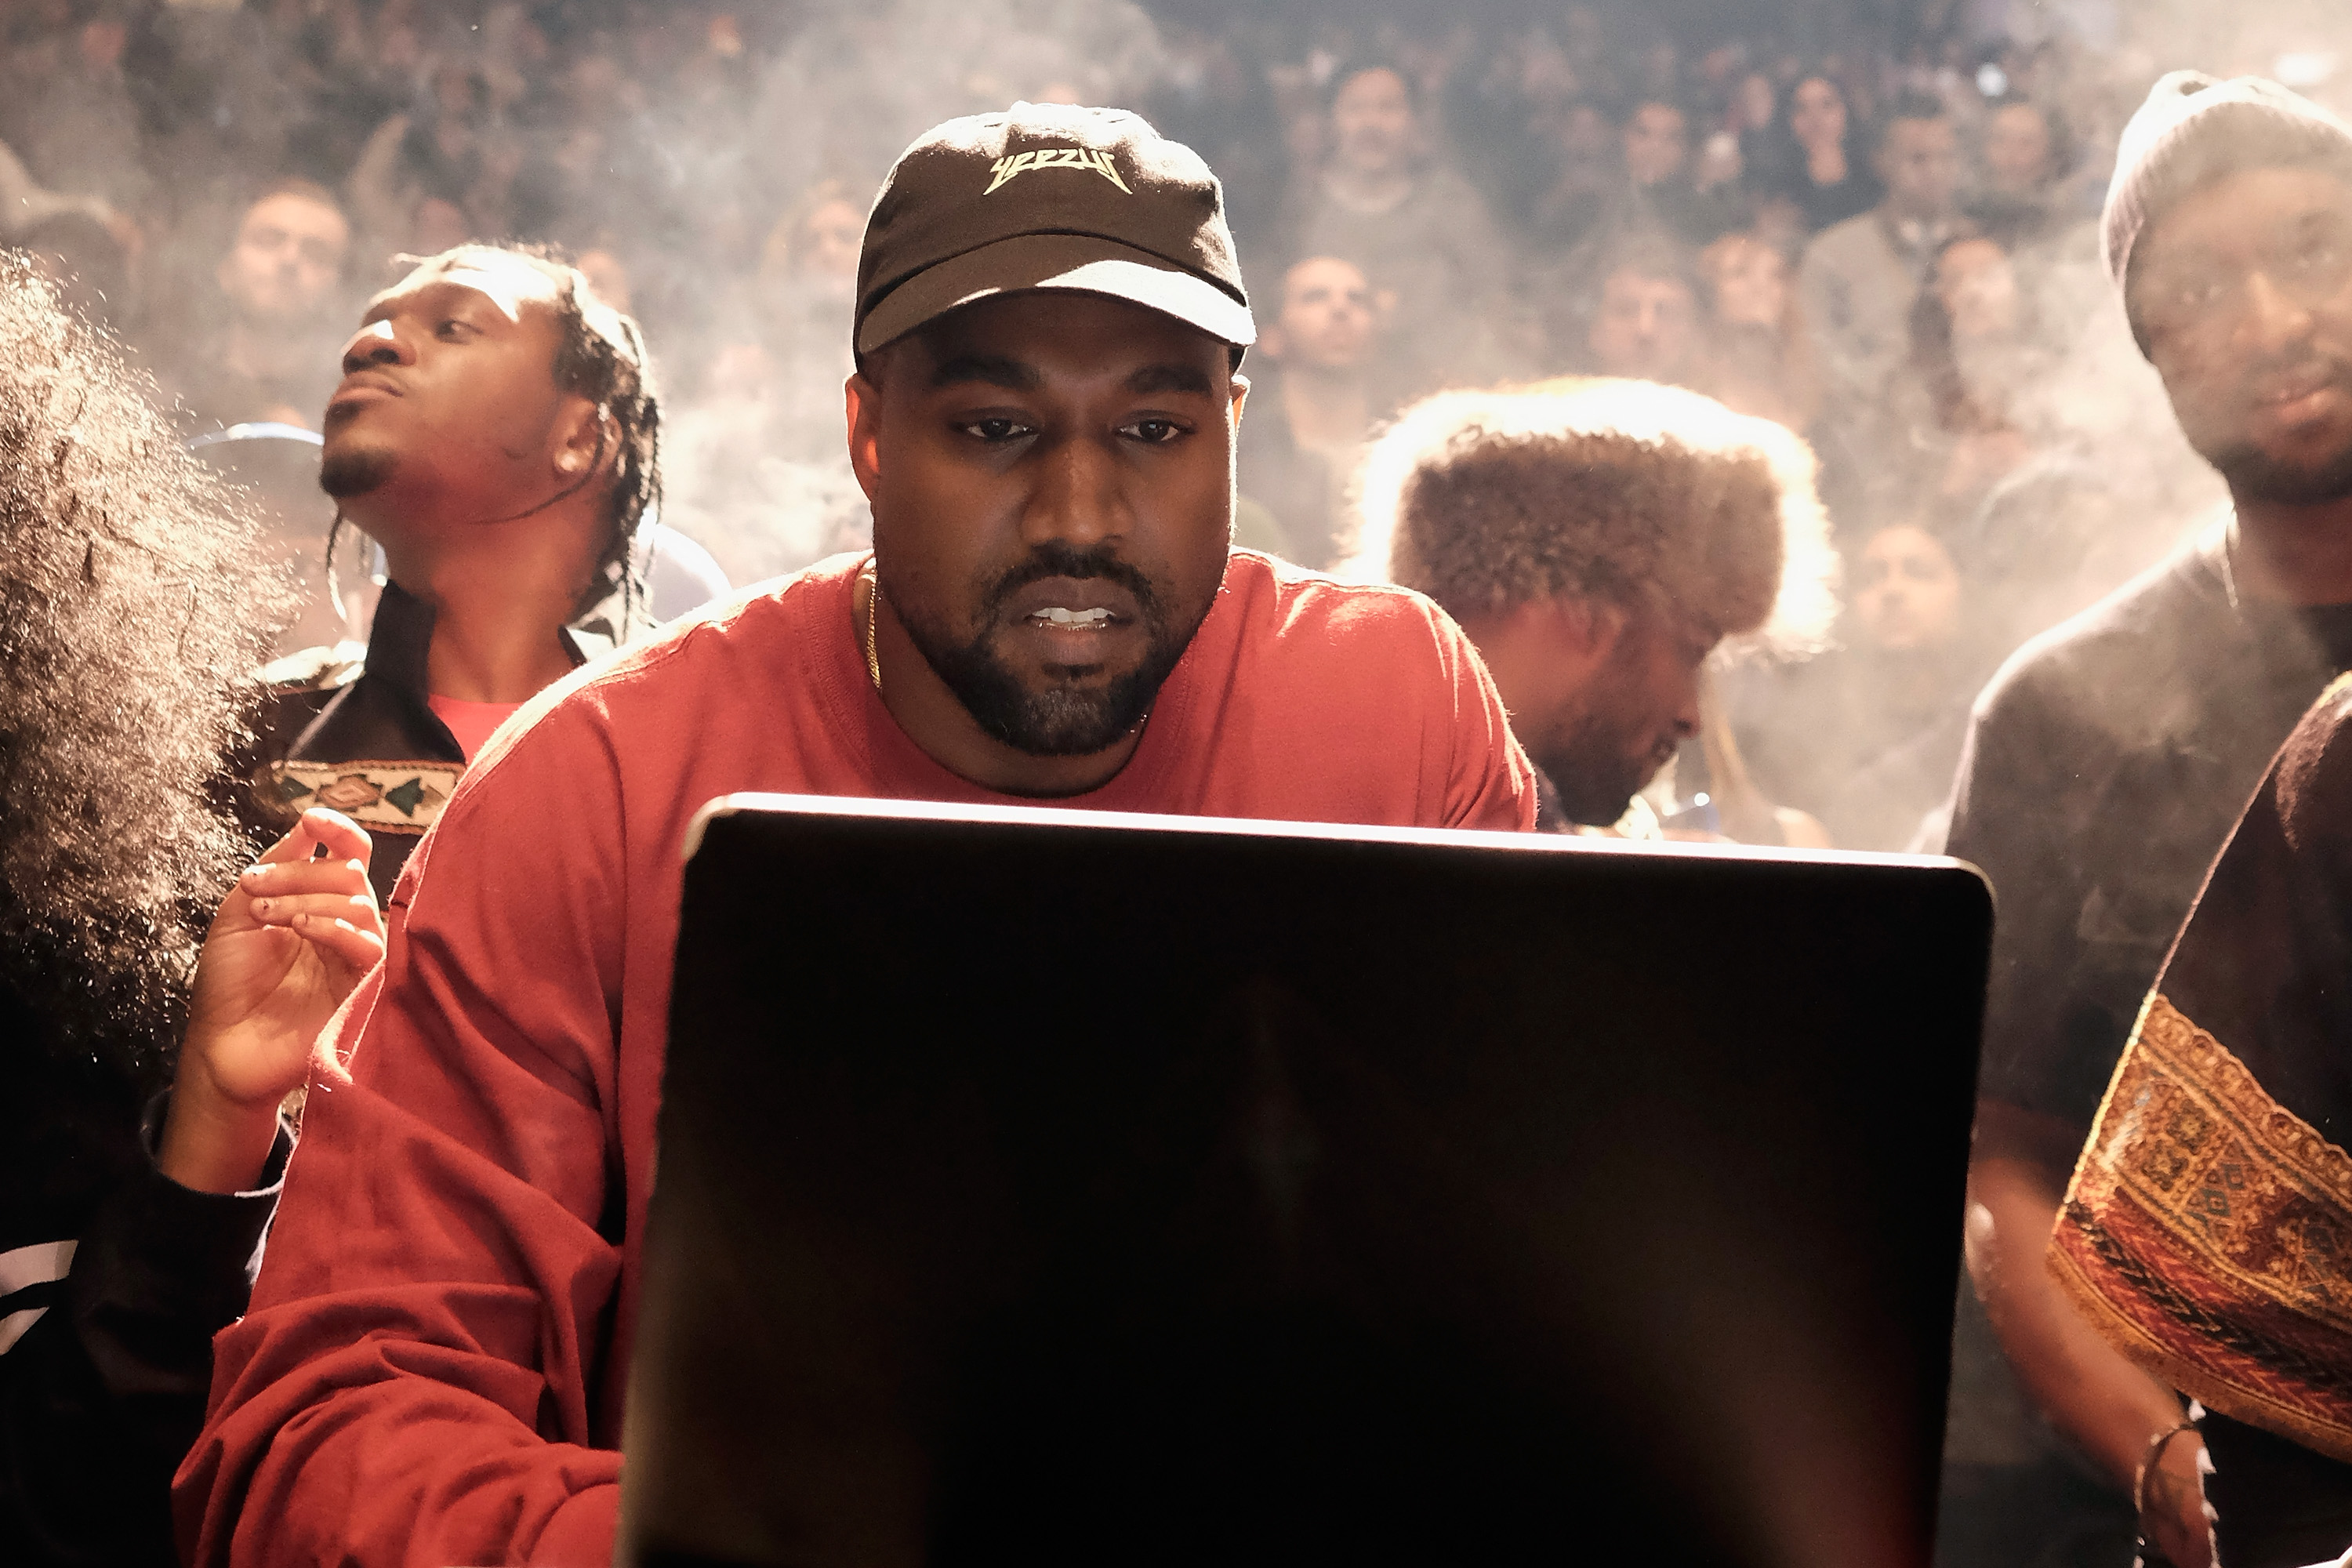 WATCH: An orchestra has mashed up Beethoven and Kanye West